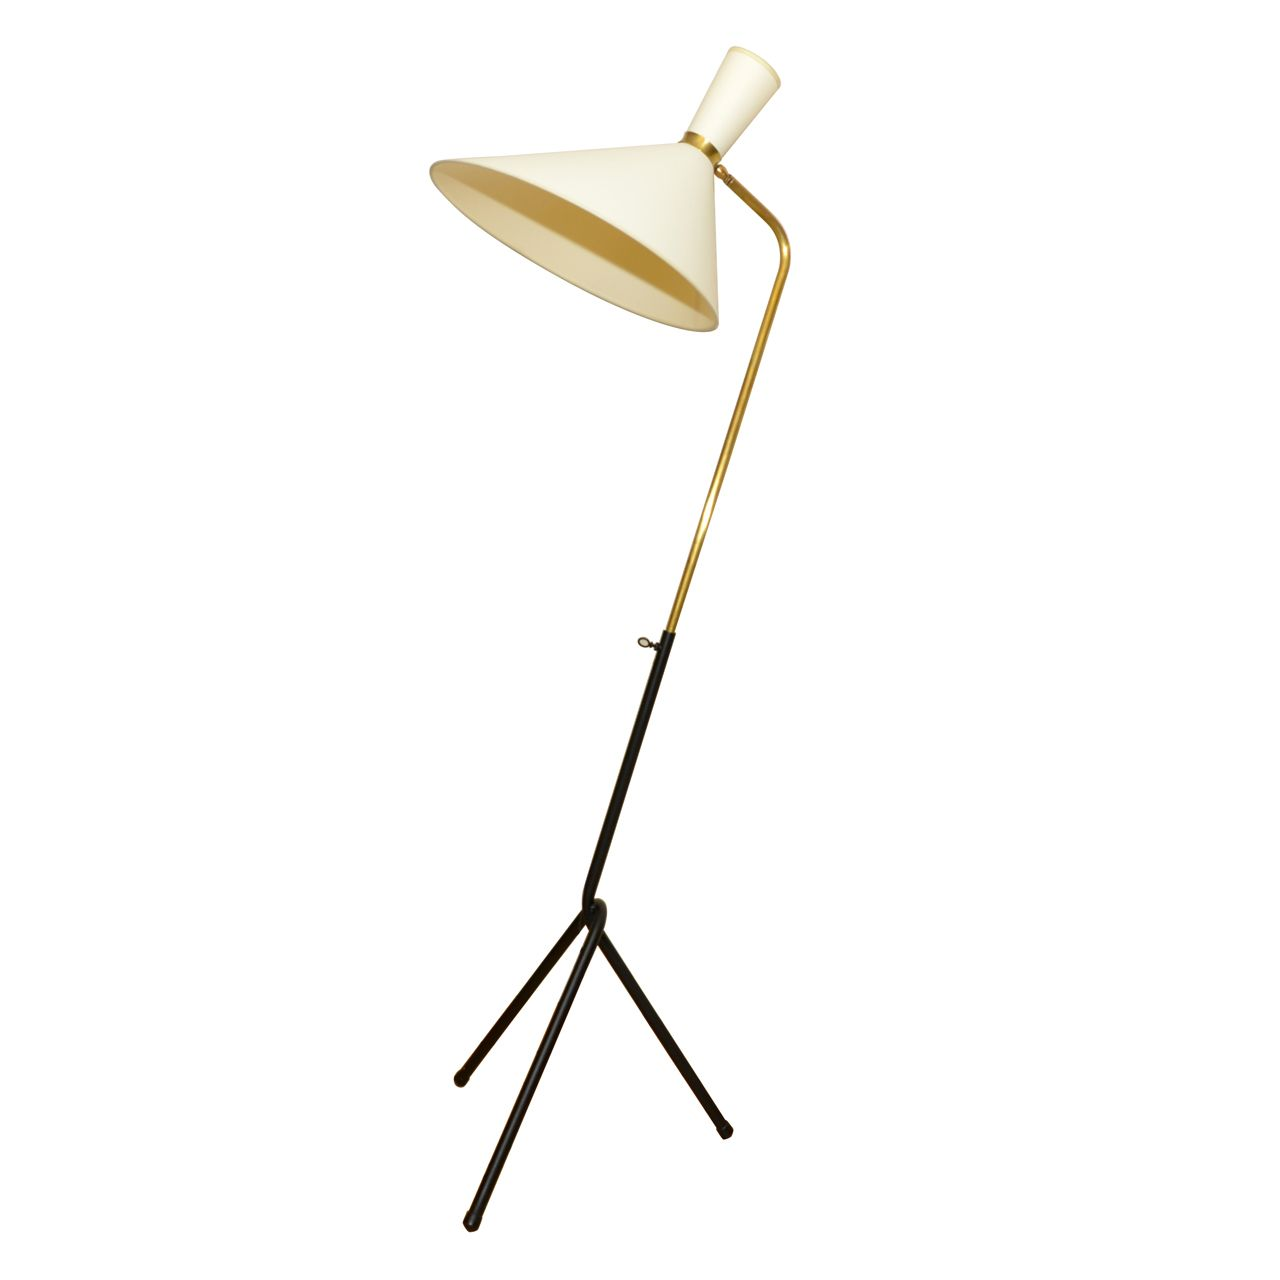 1stdibs 1950s Floor Lamp By Jacques Biny Explore Items From 1 700 Global Dealers At 1stdibs Com Vintage Floor Lamp Floor Lamp Floor Lamp Table